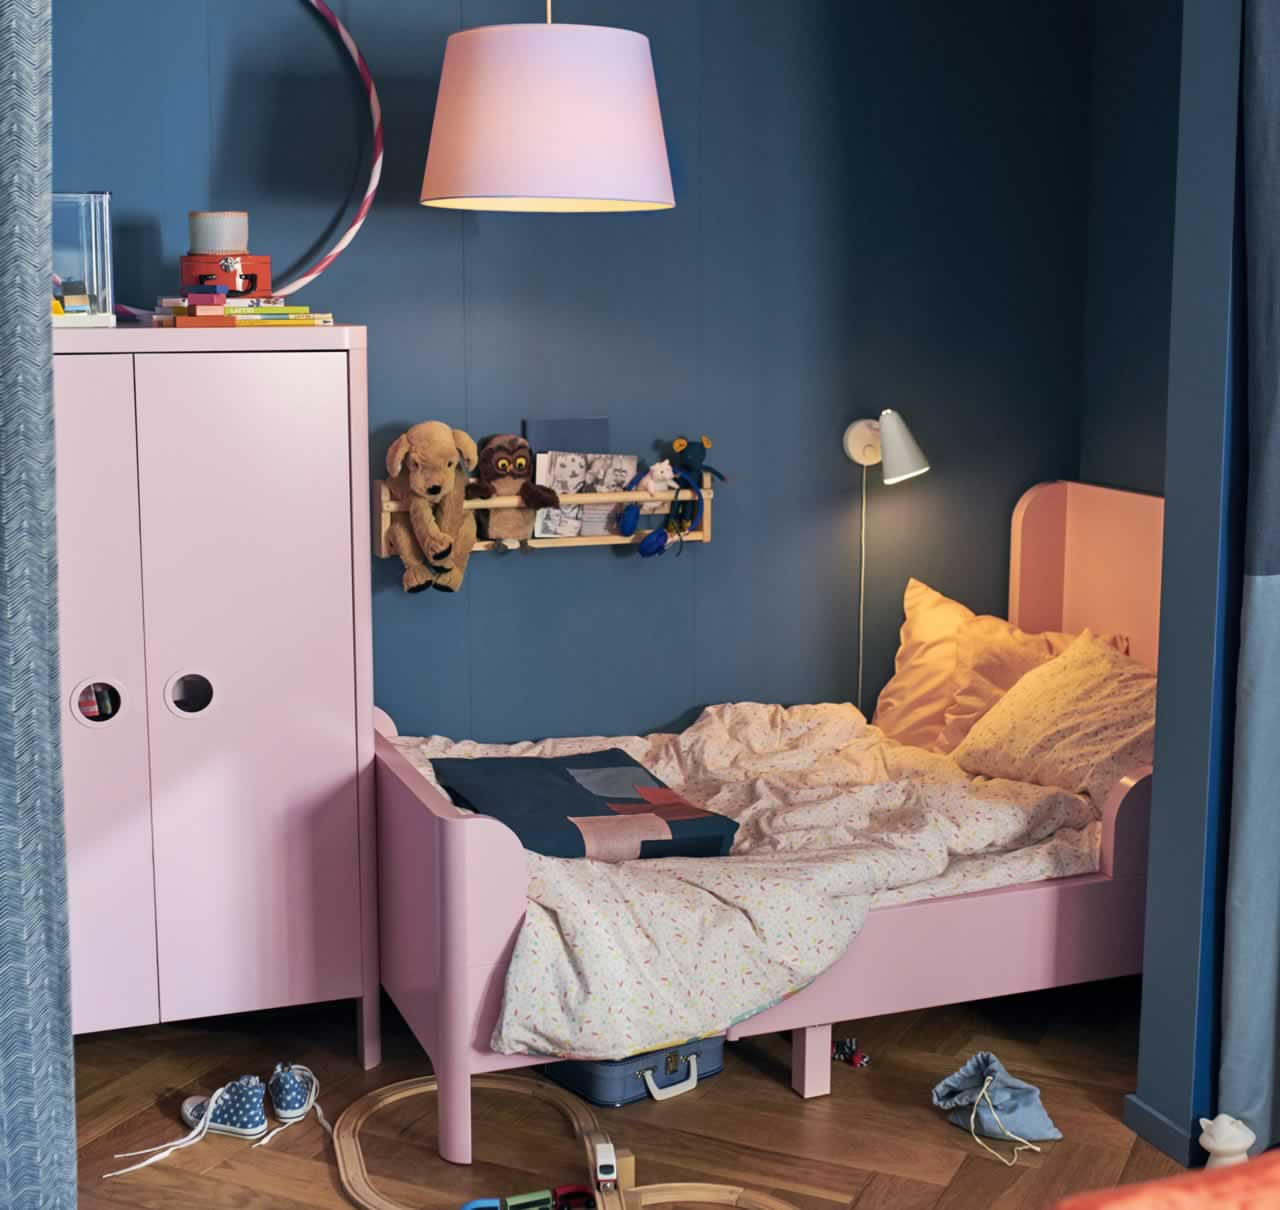 IKEA Ideas - A colourful and cosy small space for two